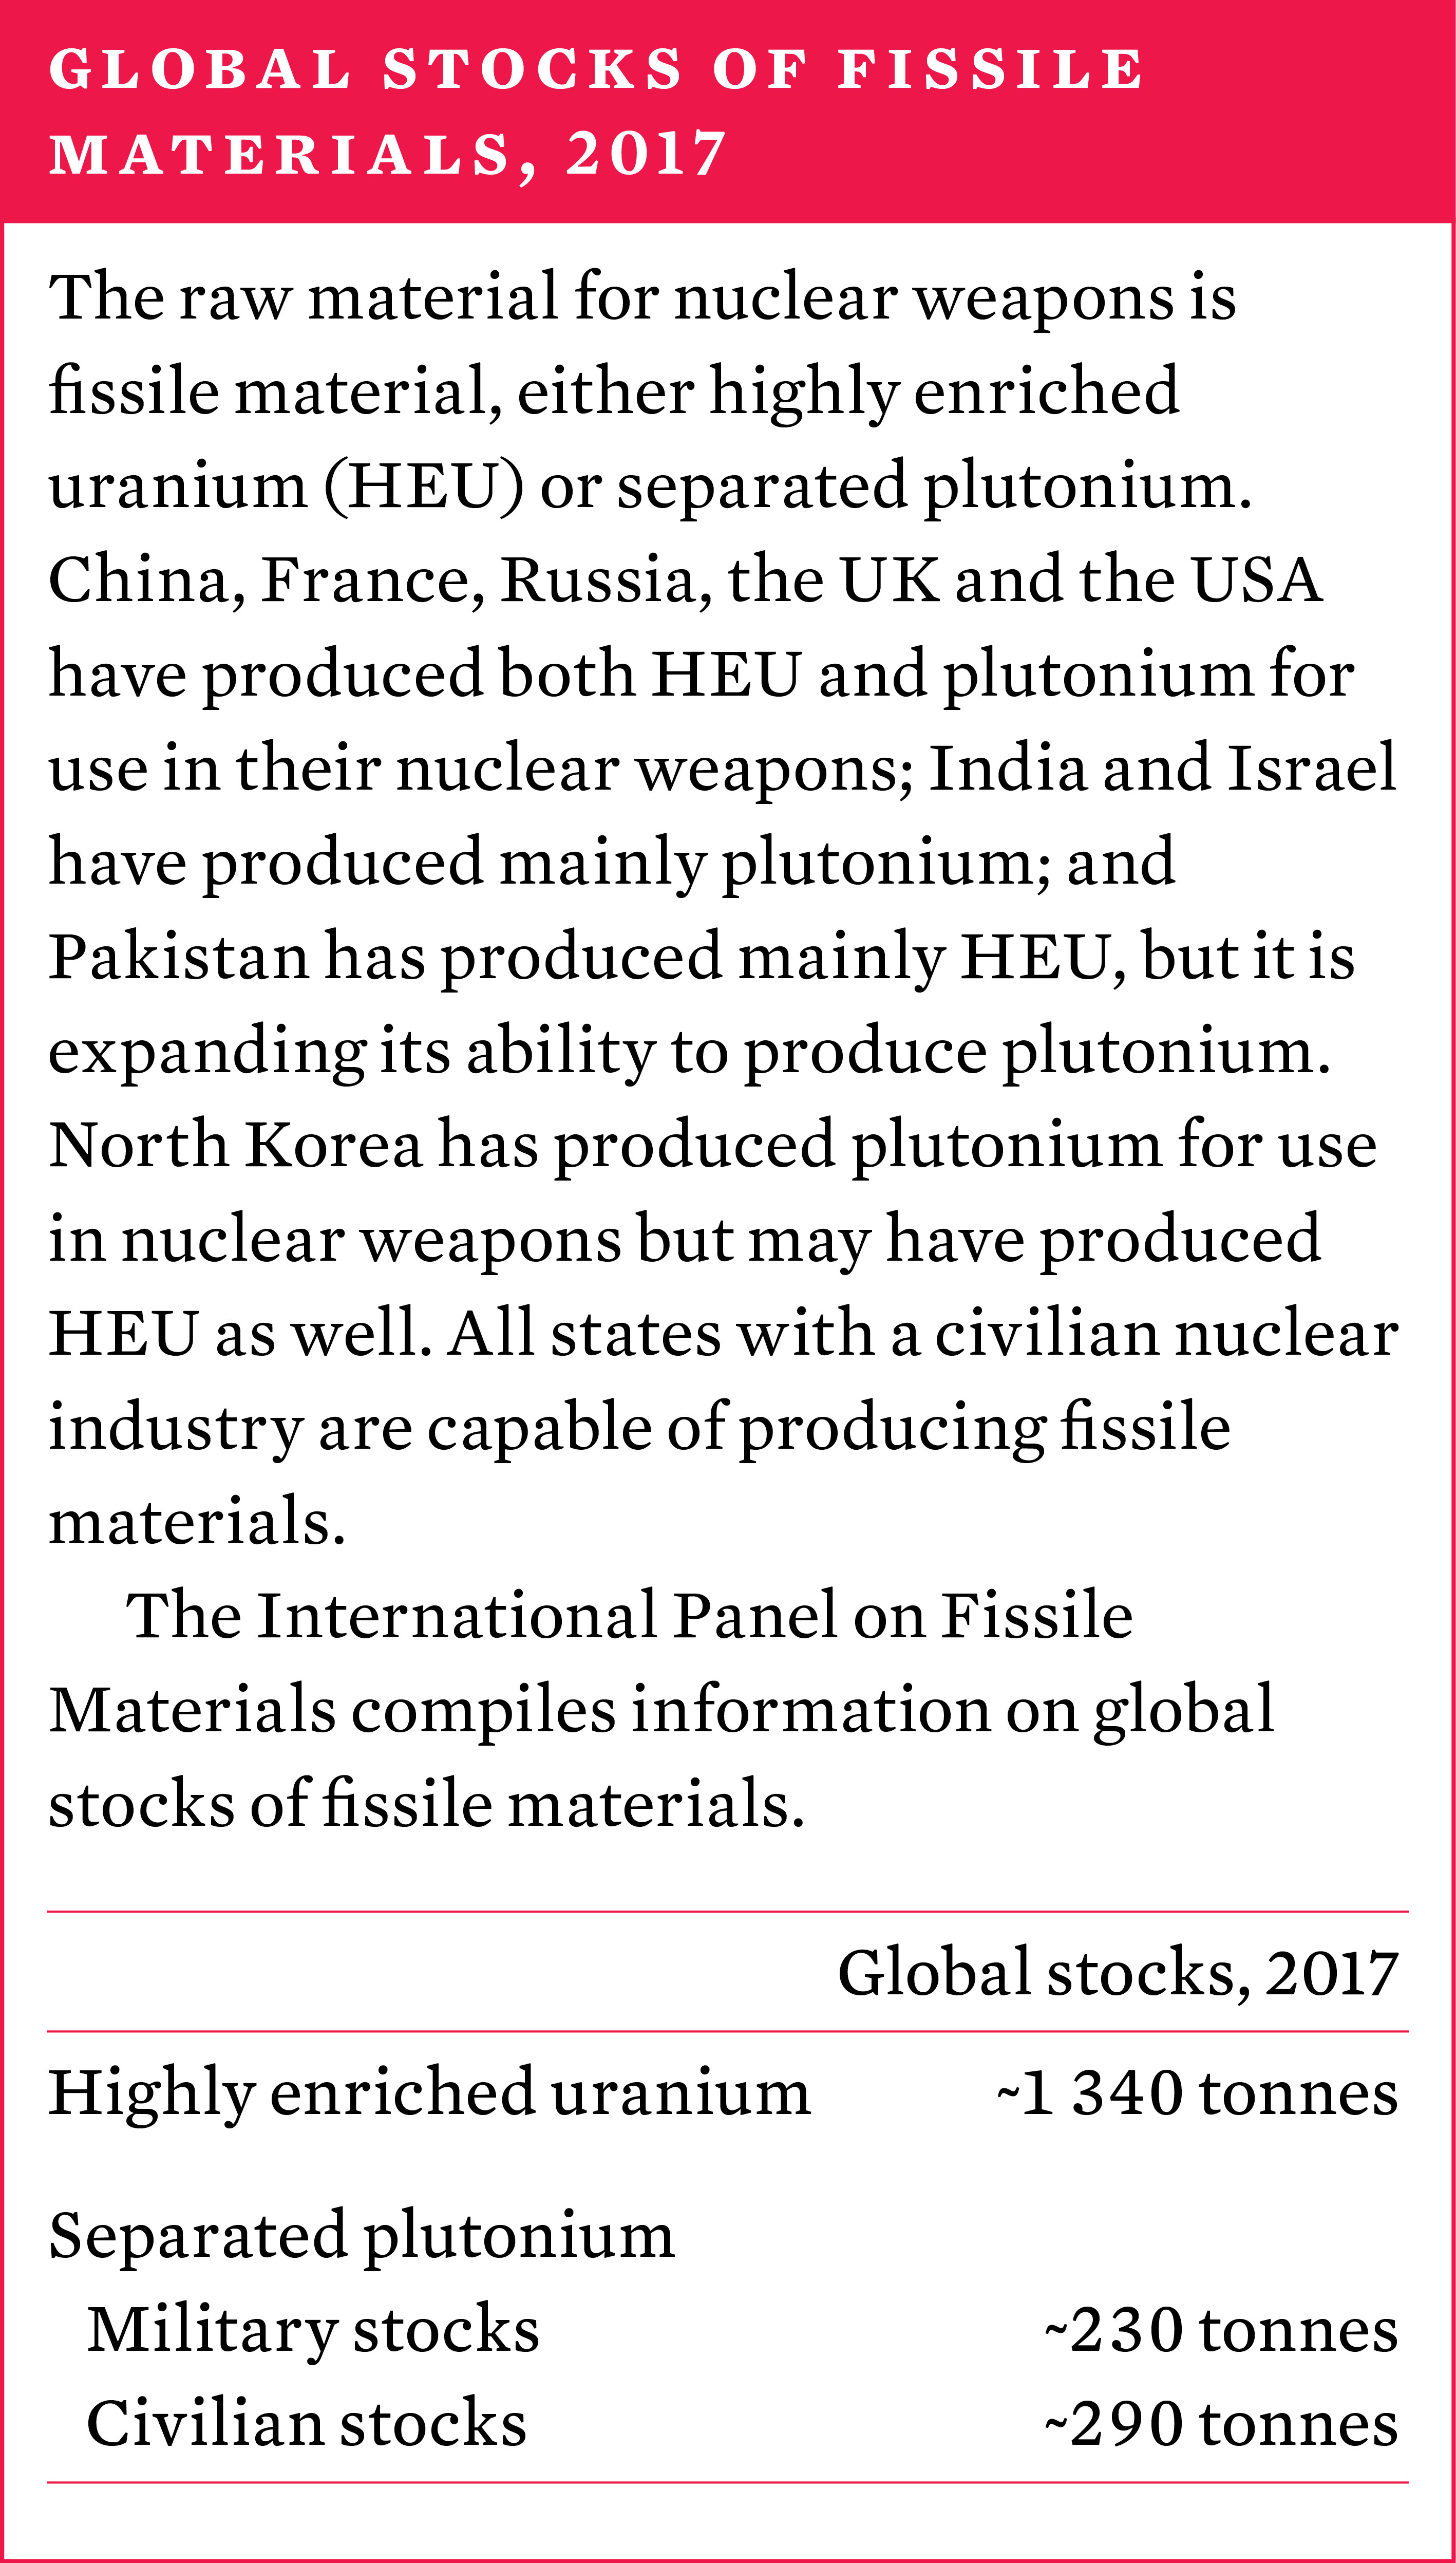 Global stocks of fissile materials, 2017